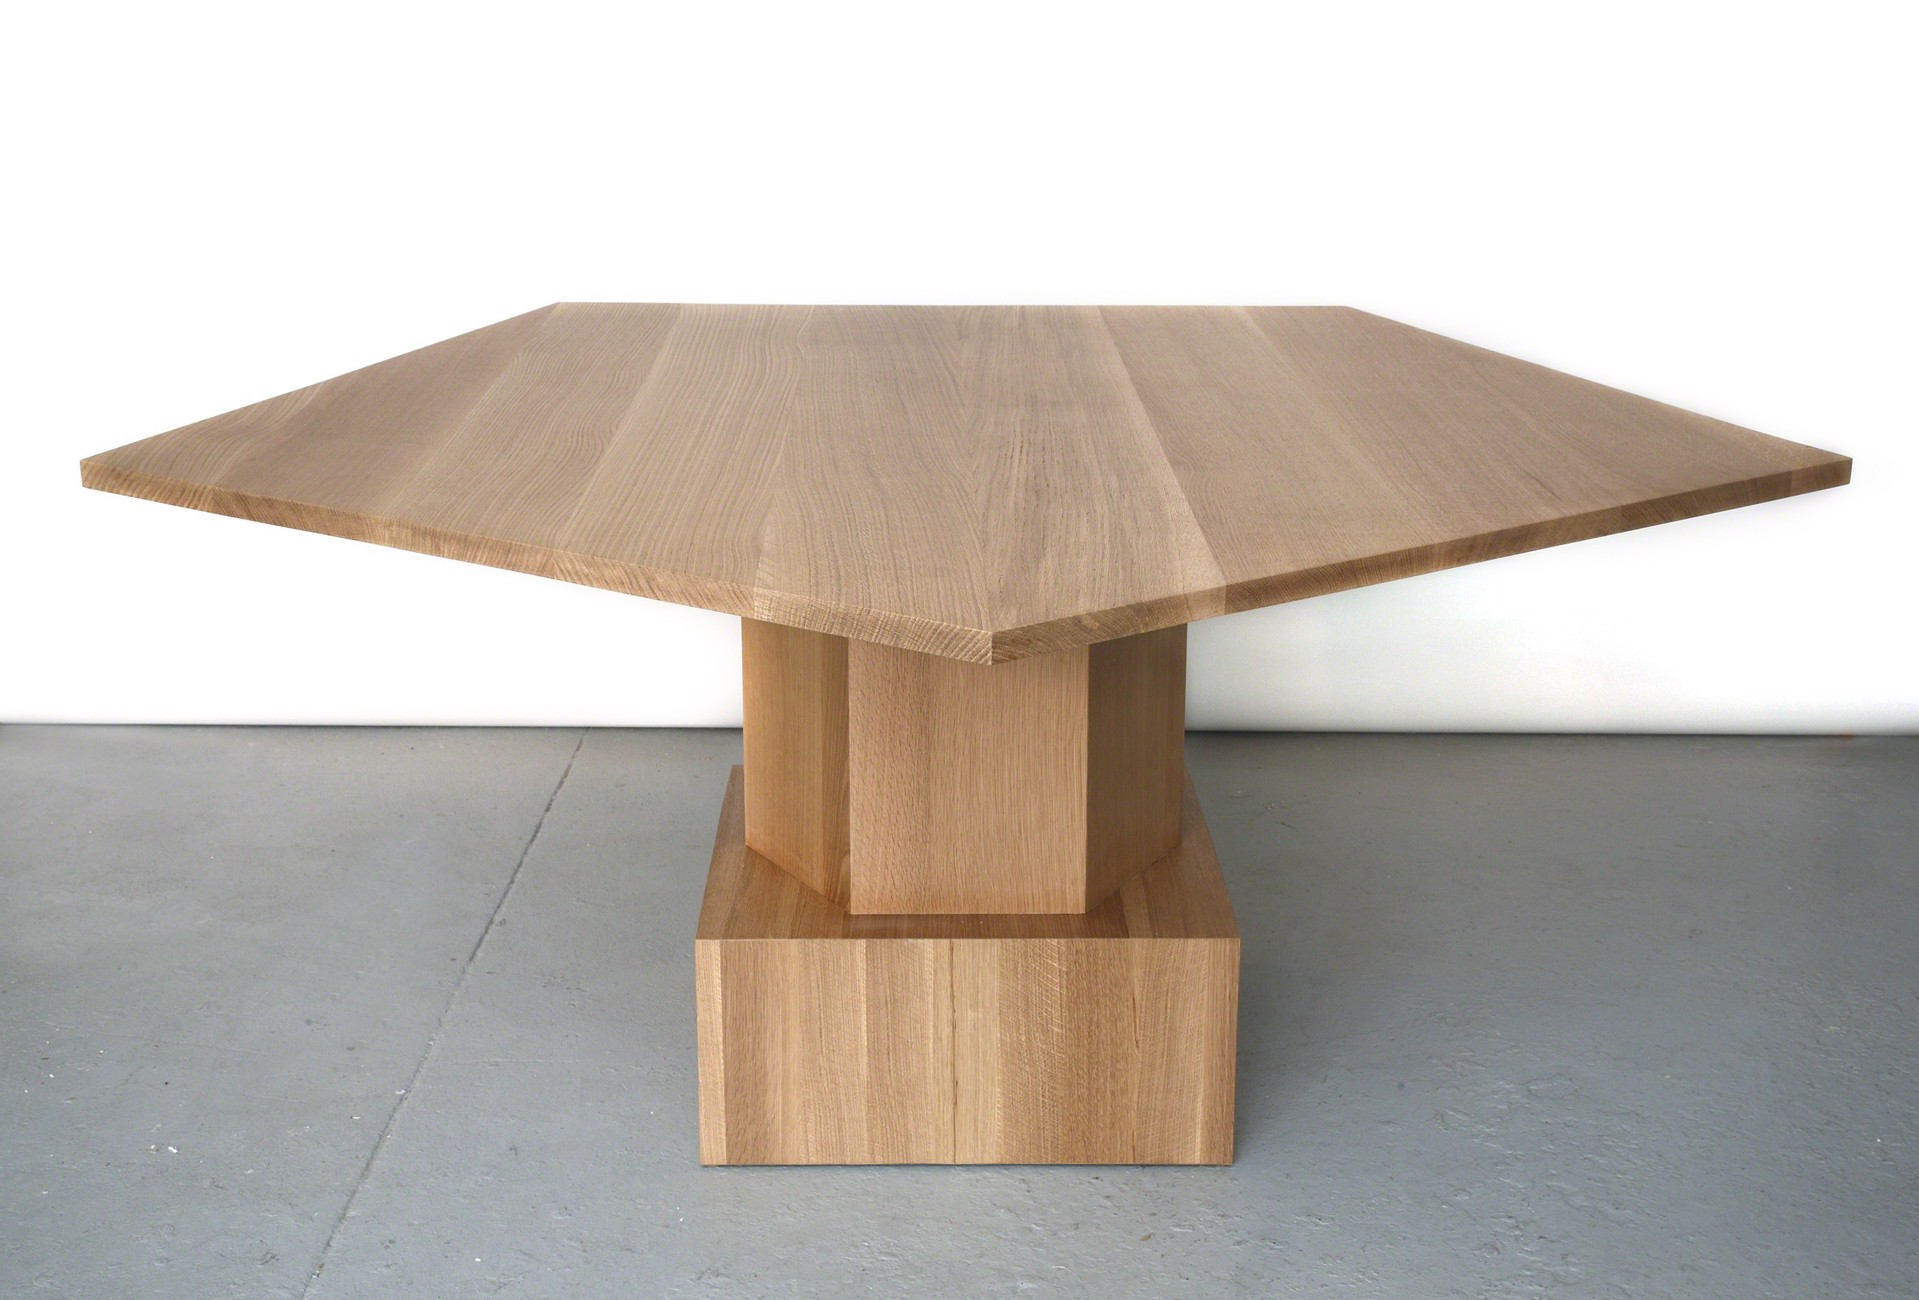 Dining Table - Center Table by Tinatin Kilaberidze